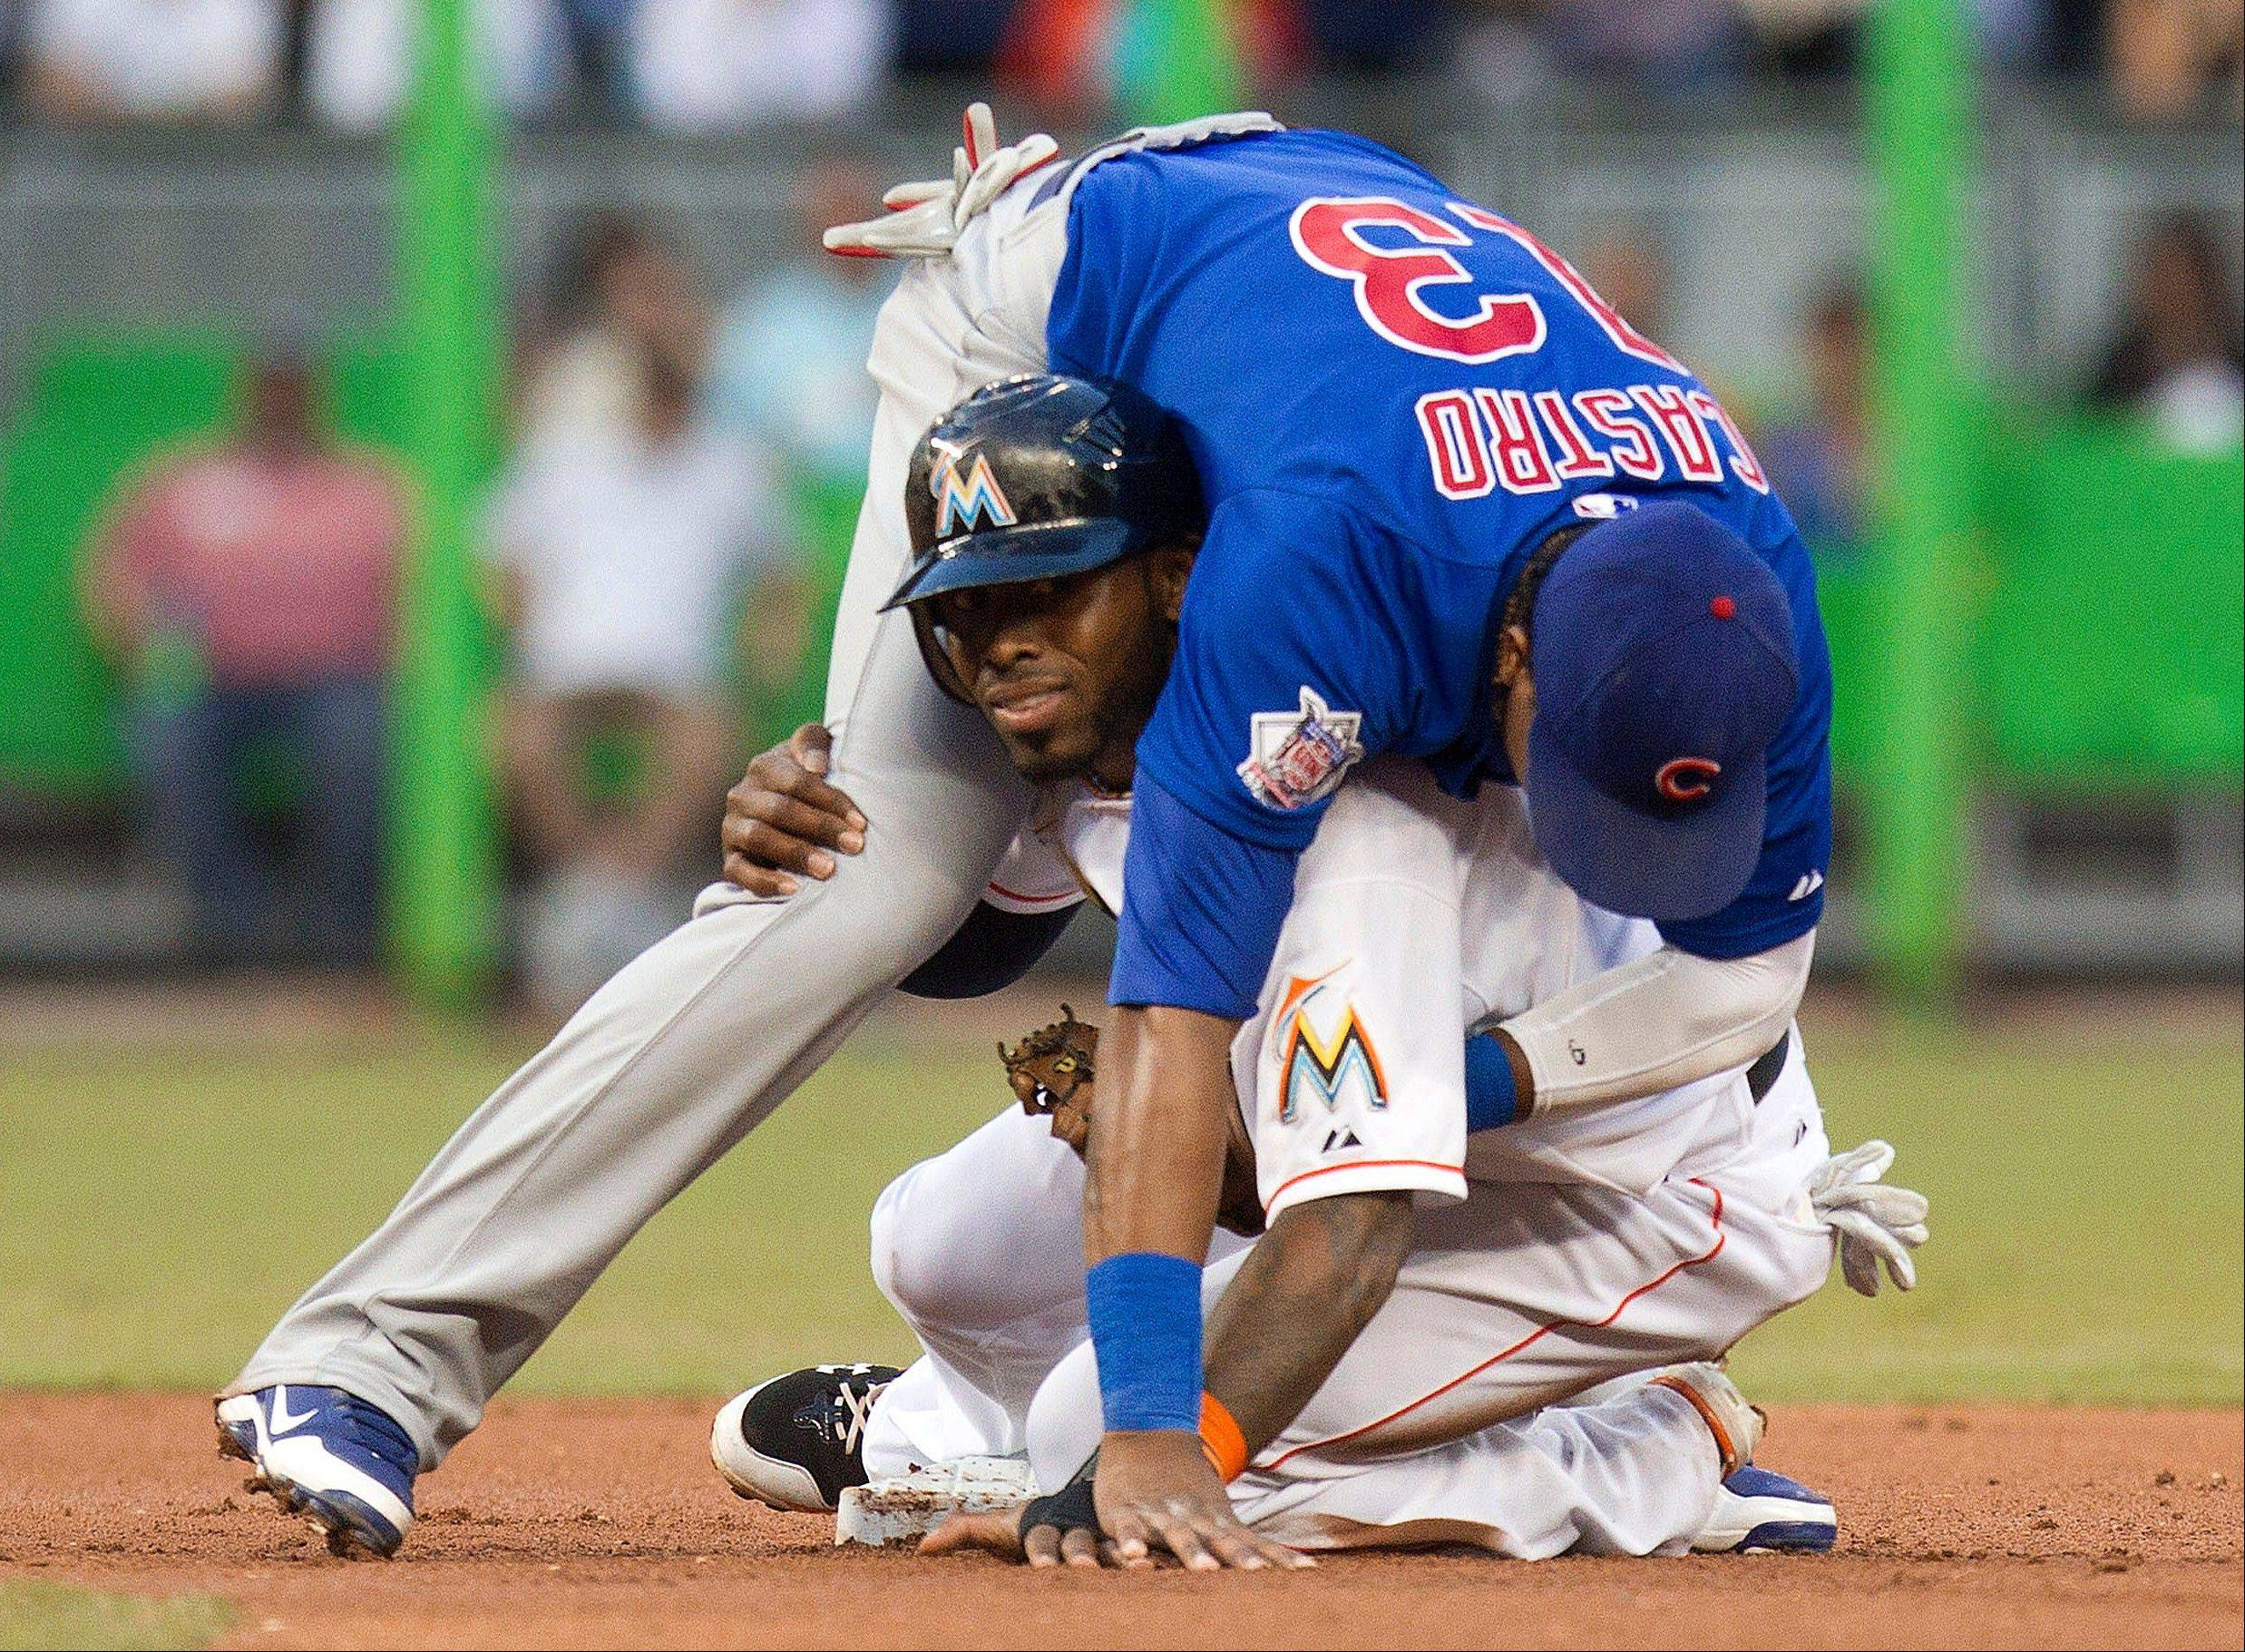 Cubs no match for Buehrle, Marlins